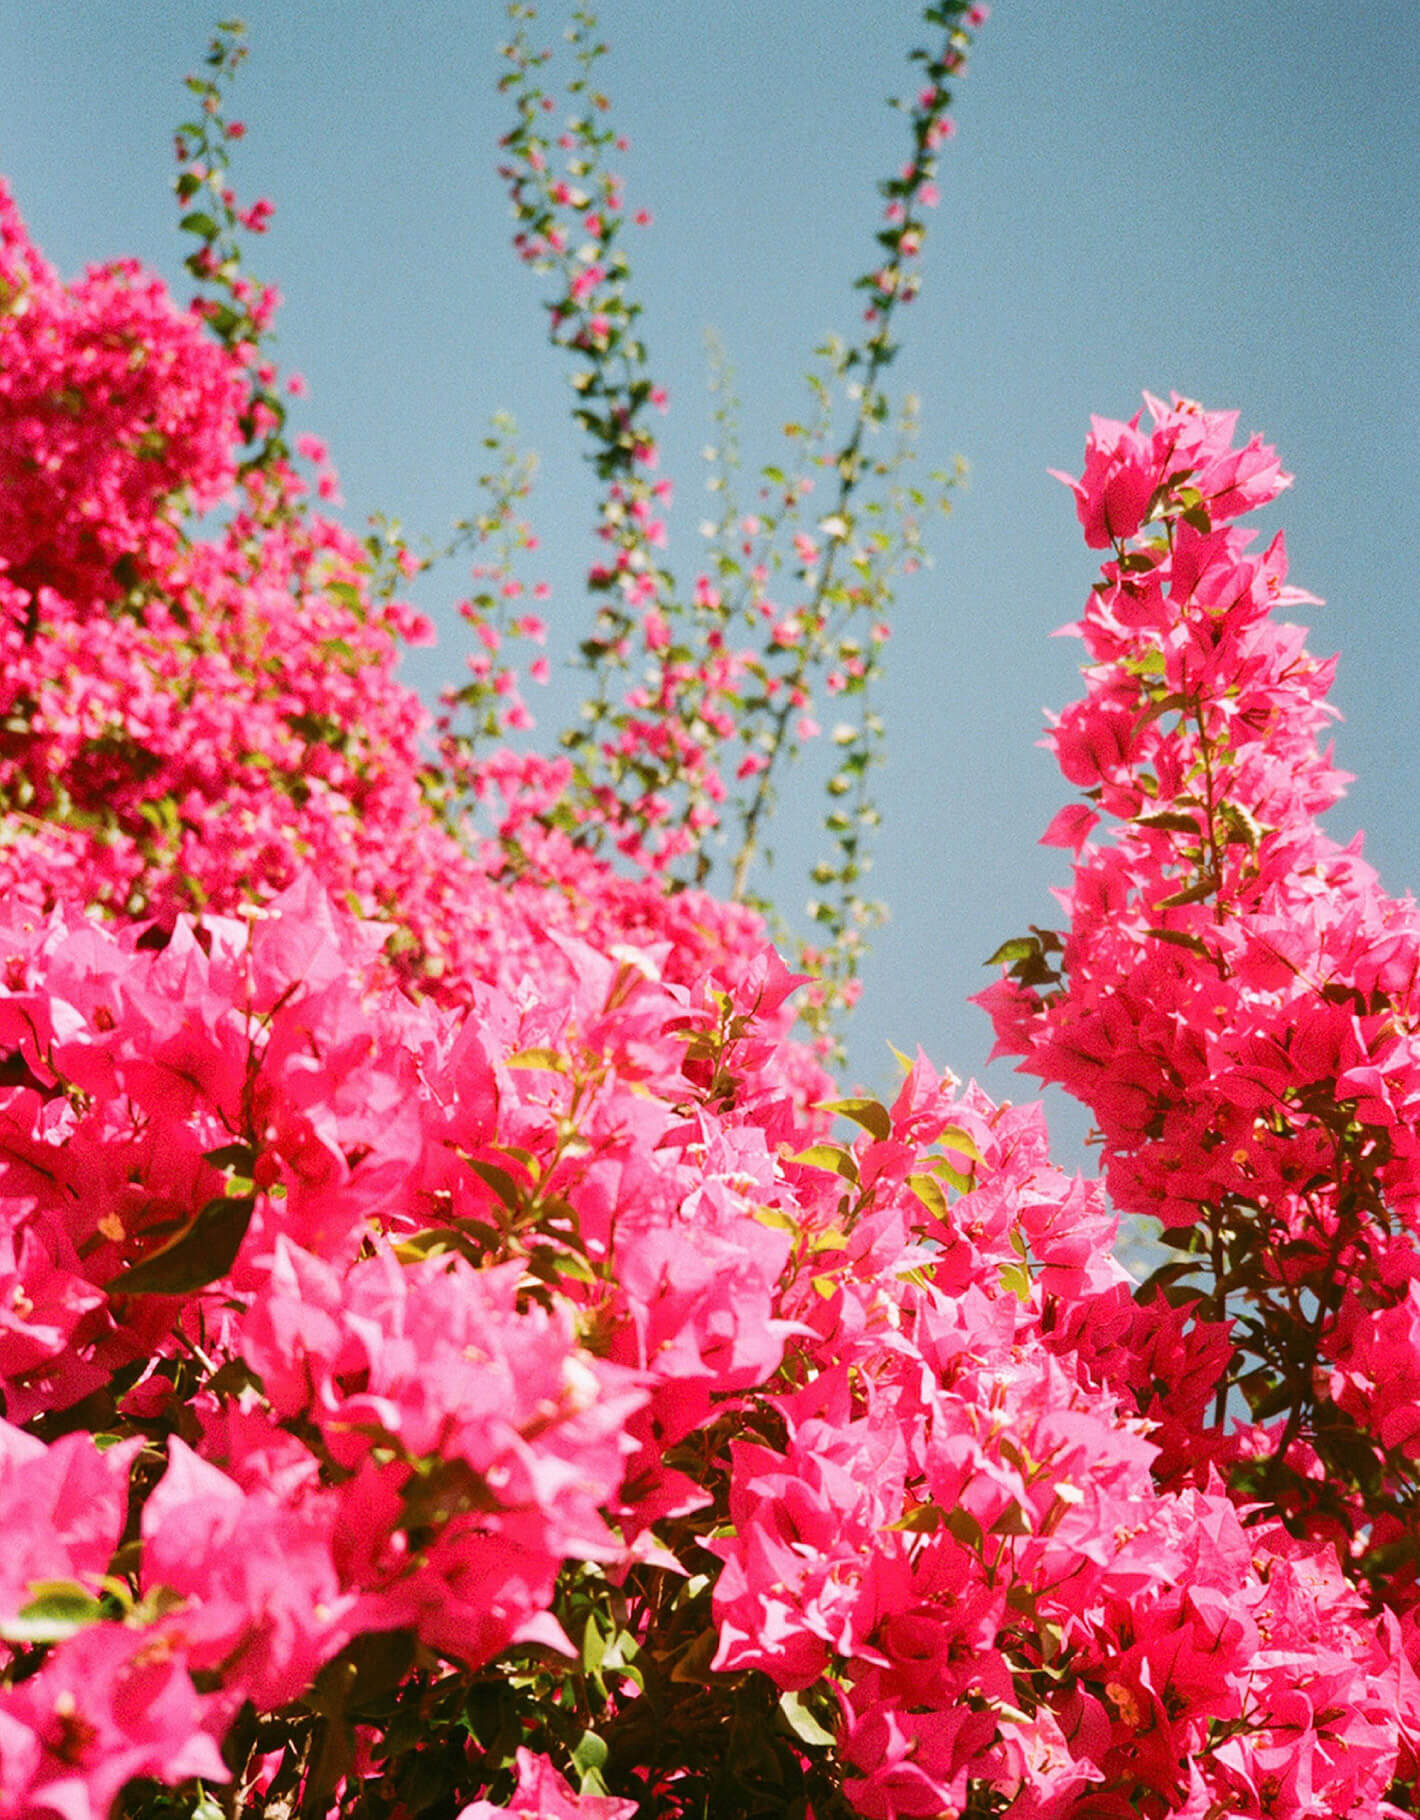 Grainy film photograph of bright pink bougainvillea by elderflower ephemera